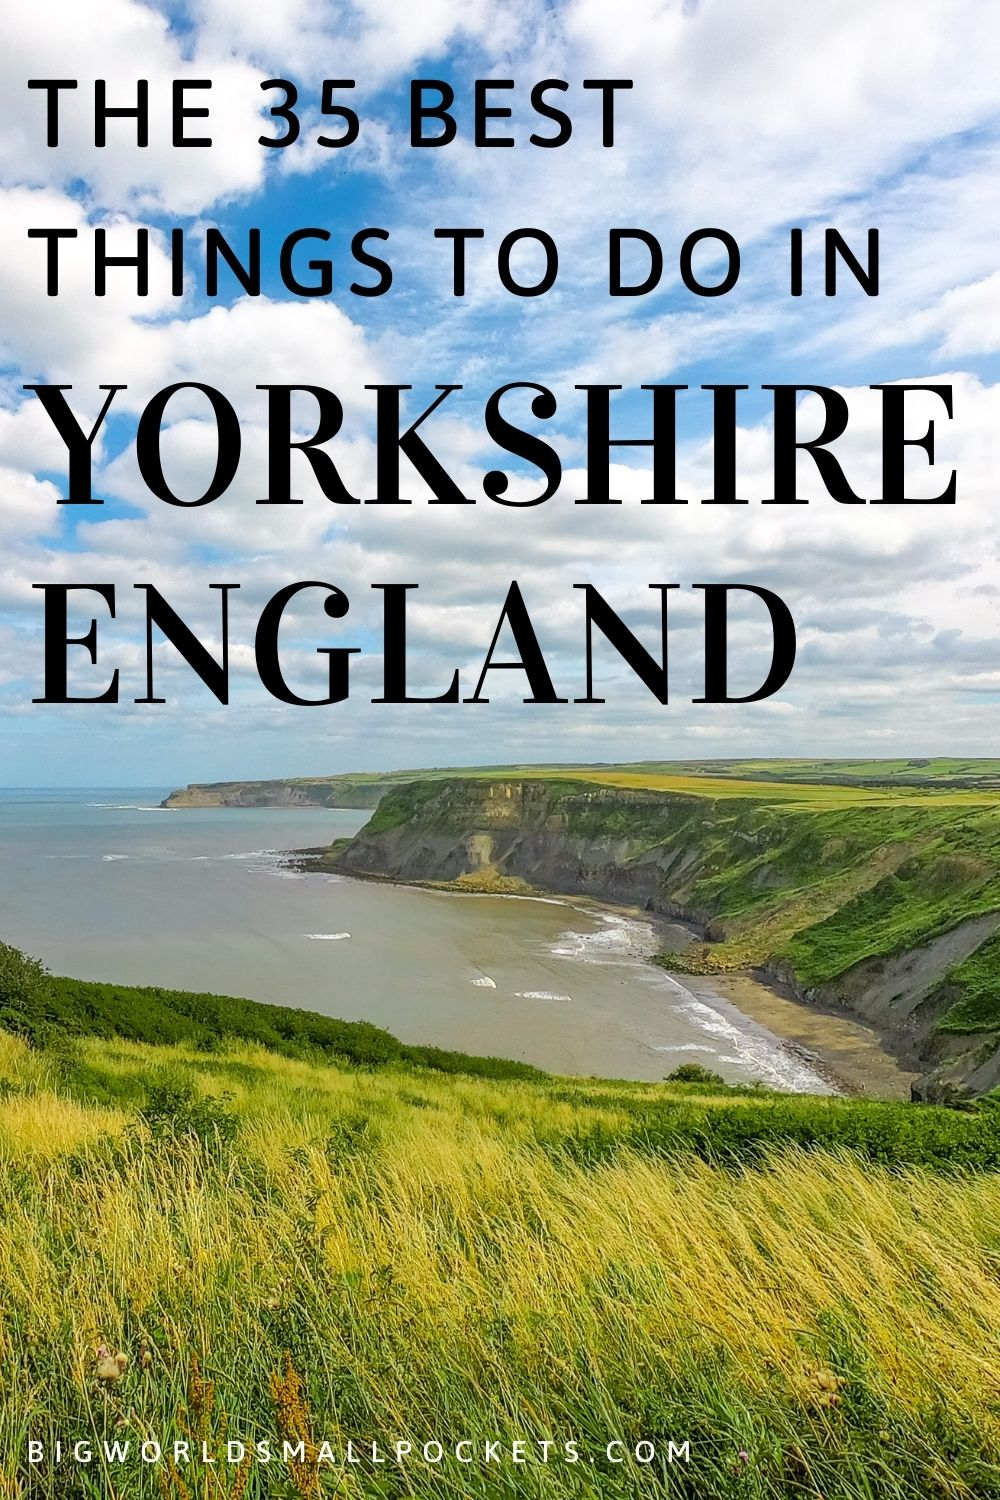 The 35 Best Things To Do in Yorkshire, England